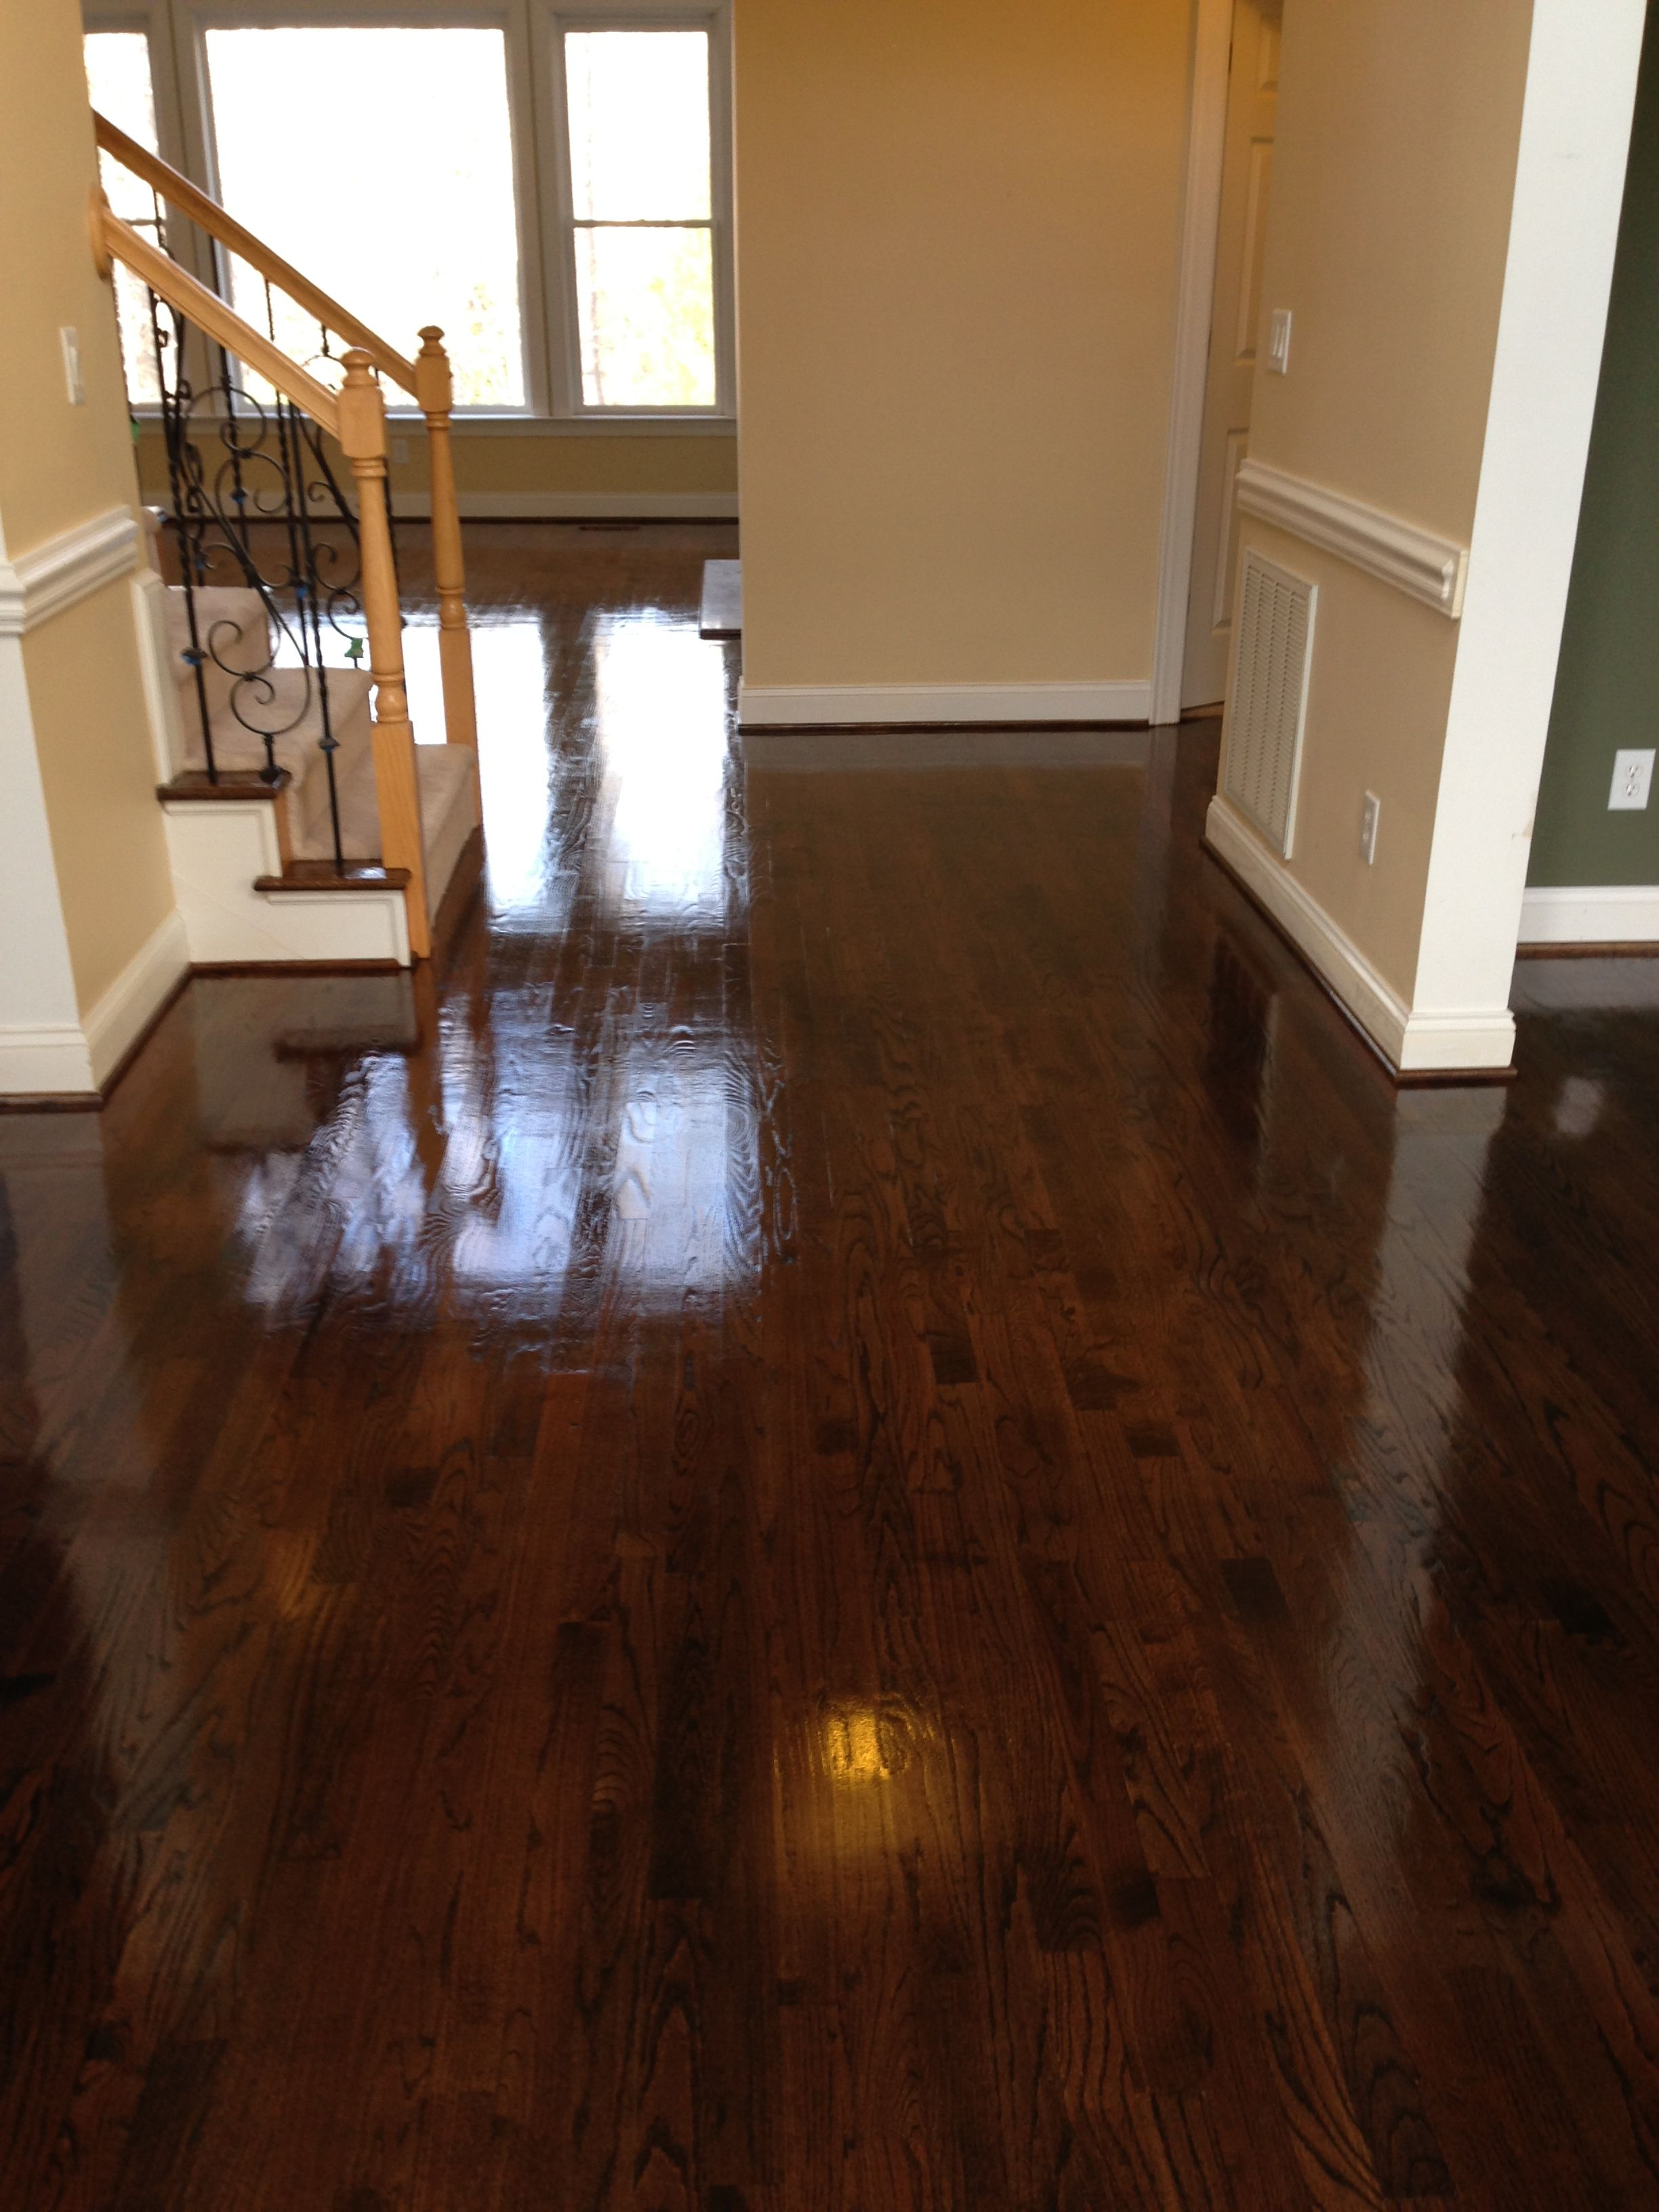 Walnut Floor Kitchen Red Oak Hardwood Floors After Three Coats Of Polyurethane Semi